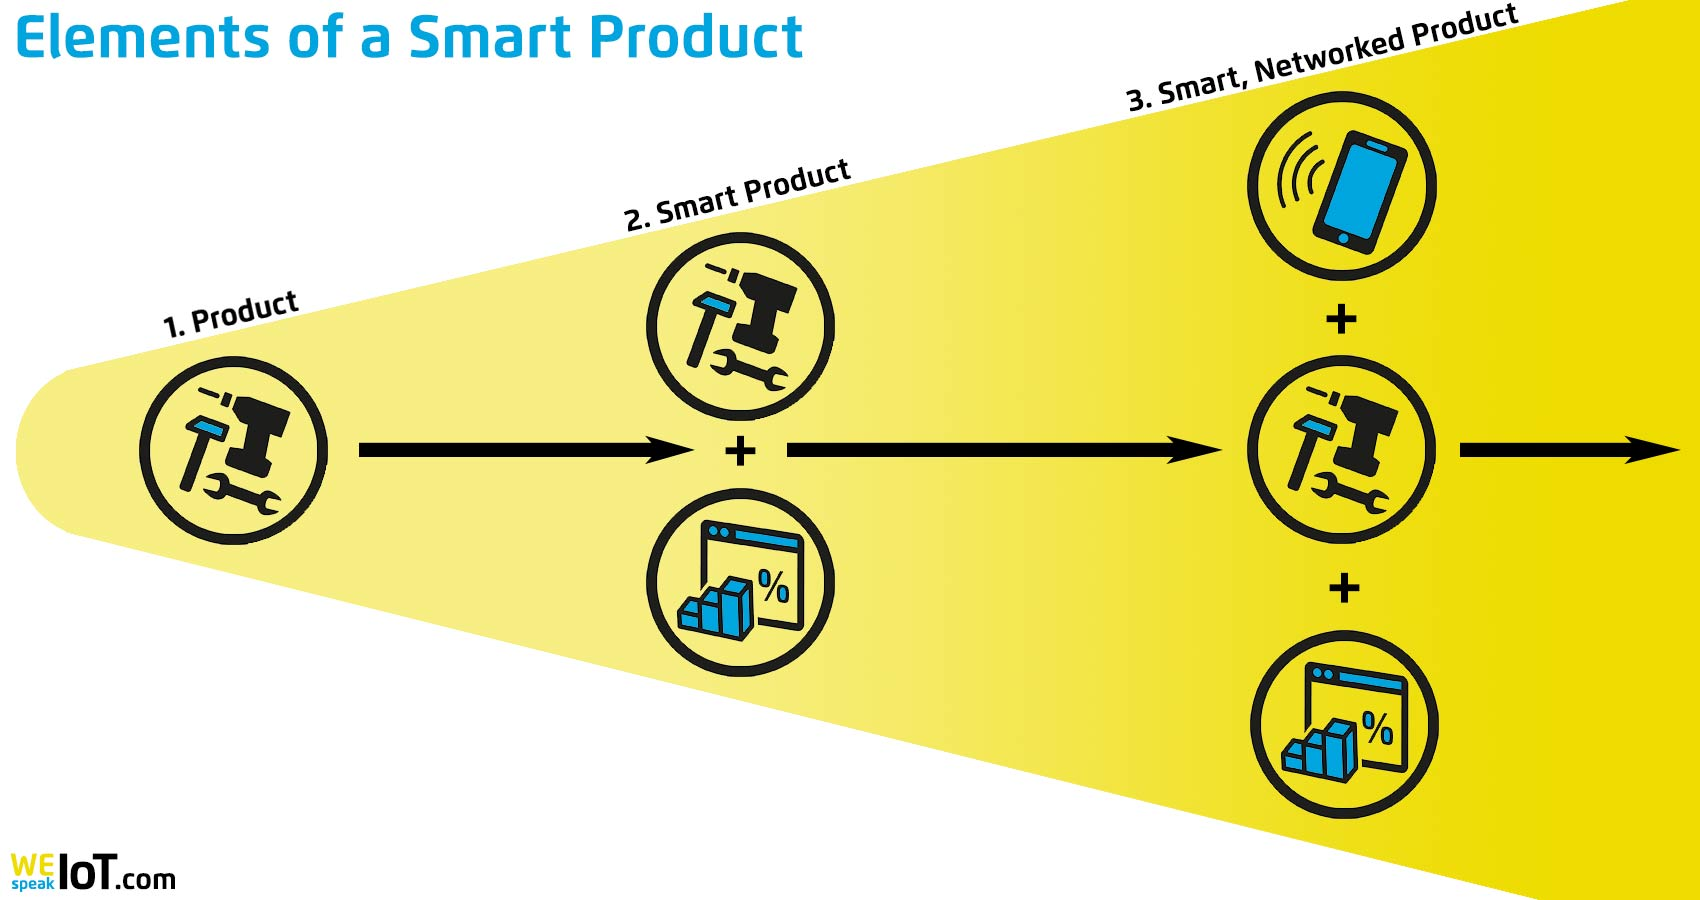 Smart Product Elements